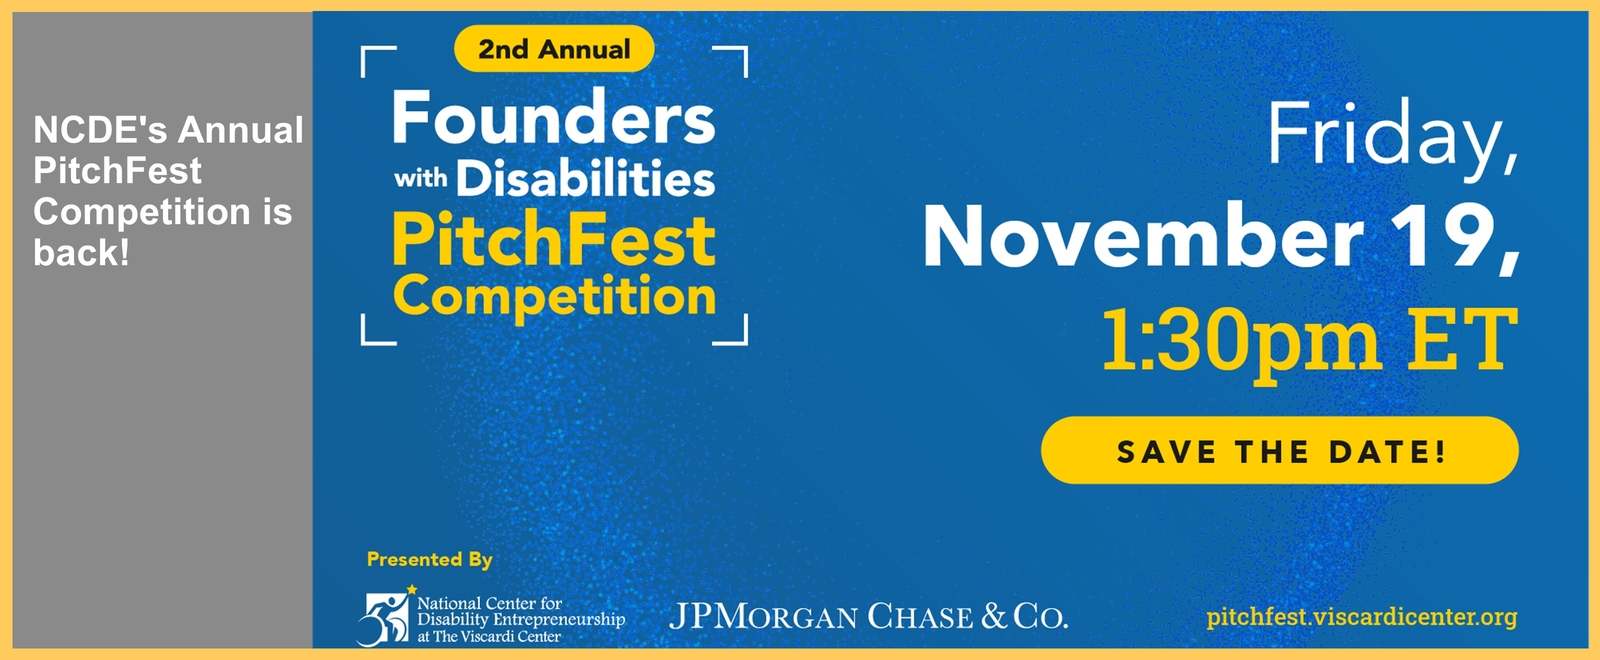 Save the Date for the Second Annual Founders with Disabilities PitchFest Competition presented by National Center for Disability Entrepreneurship at The Viscardi Center and JPMorgan Chase & Co. on Friday, November 19 at 1:30 pm ET.